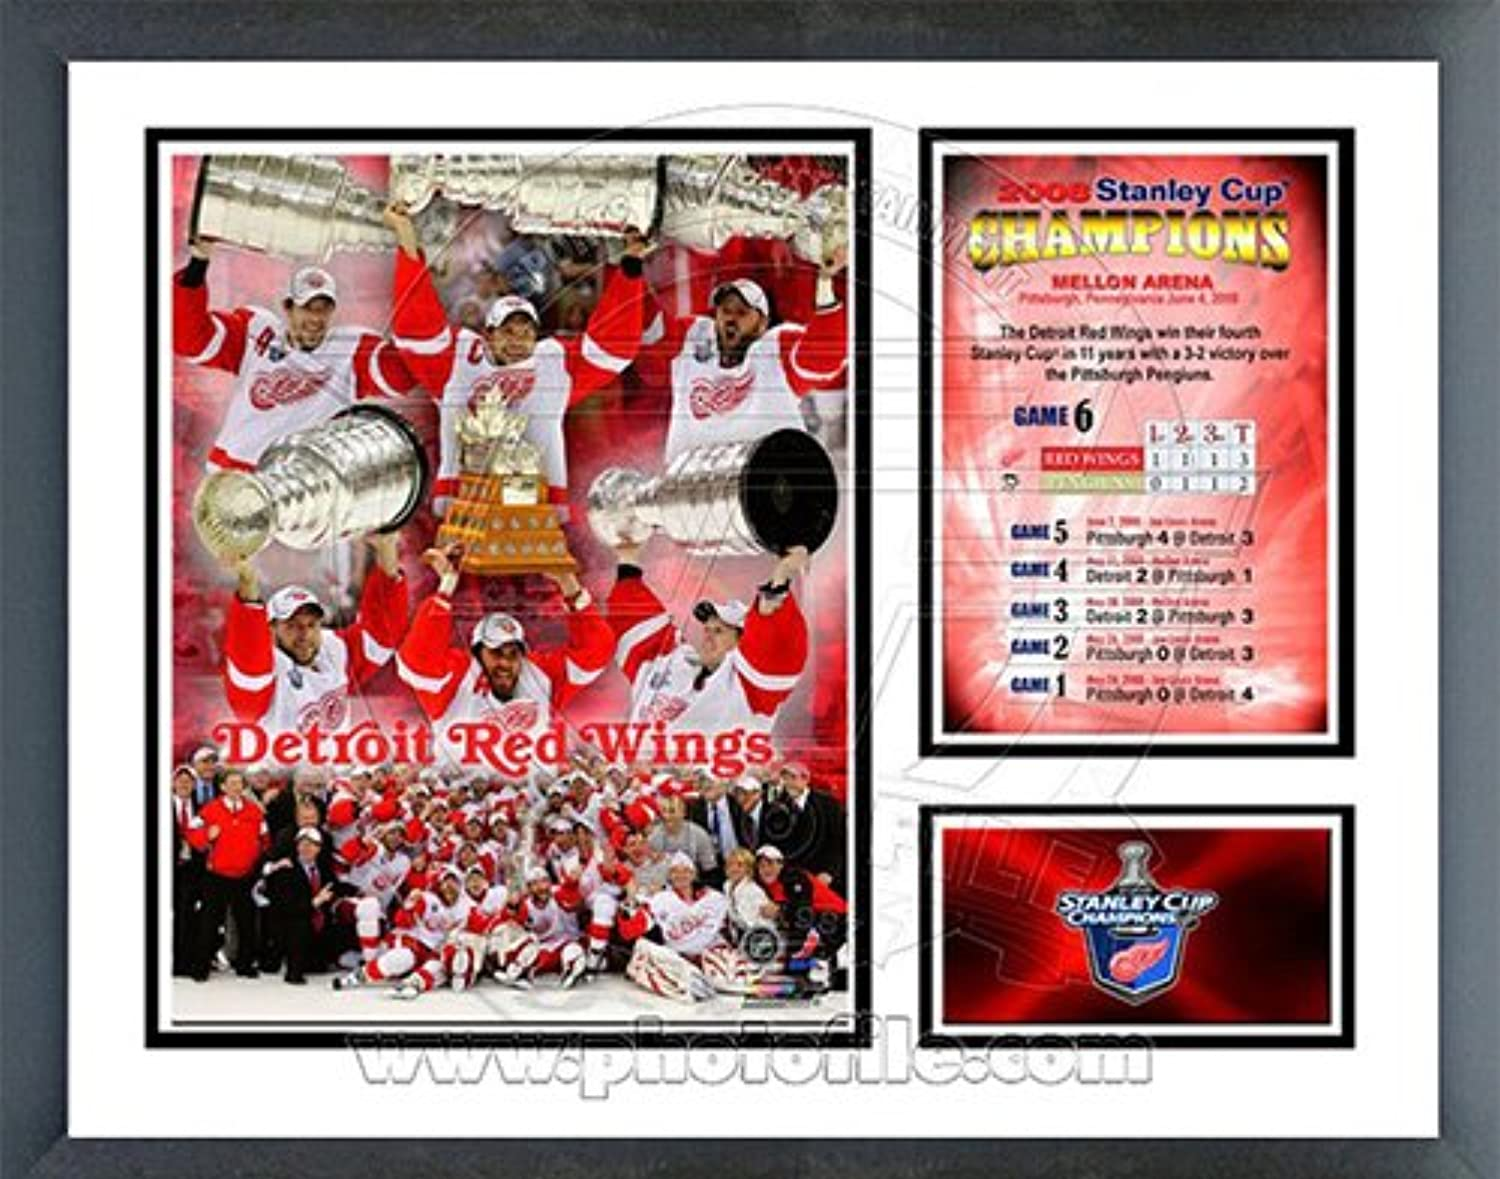 Detroit Red Wings 200708 Stanley Cup Champions Milestones & Memories Framed Photo